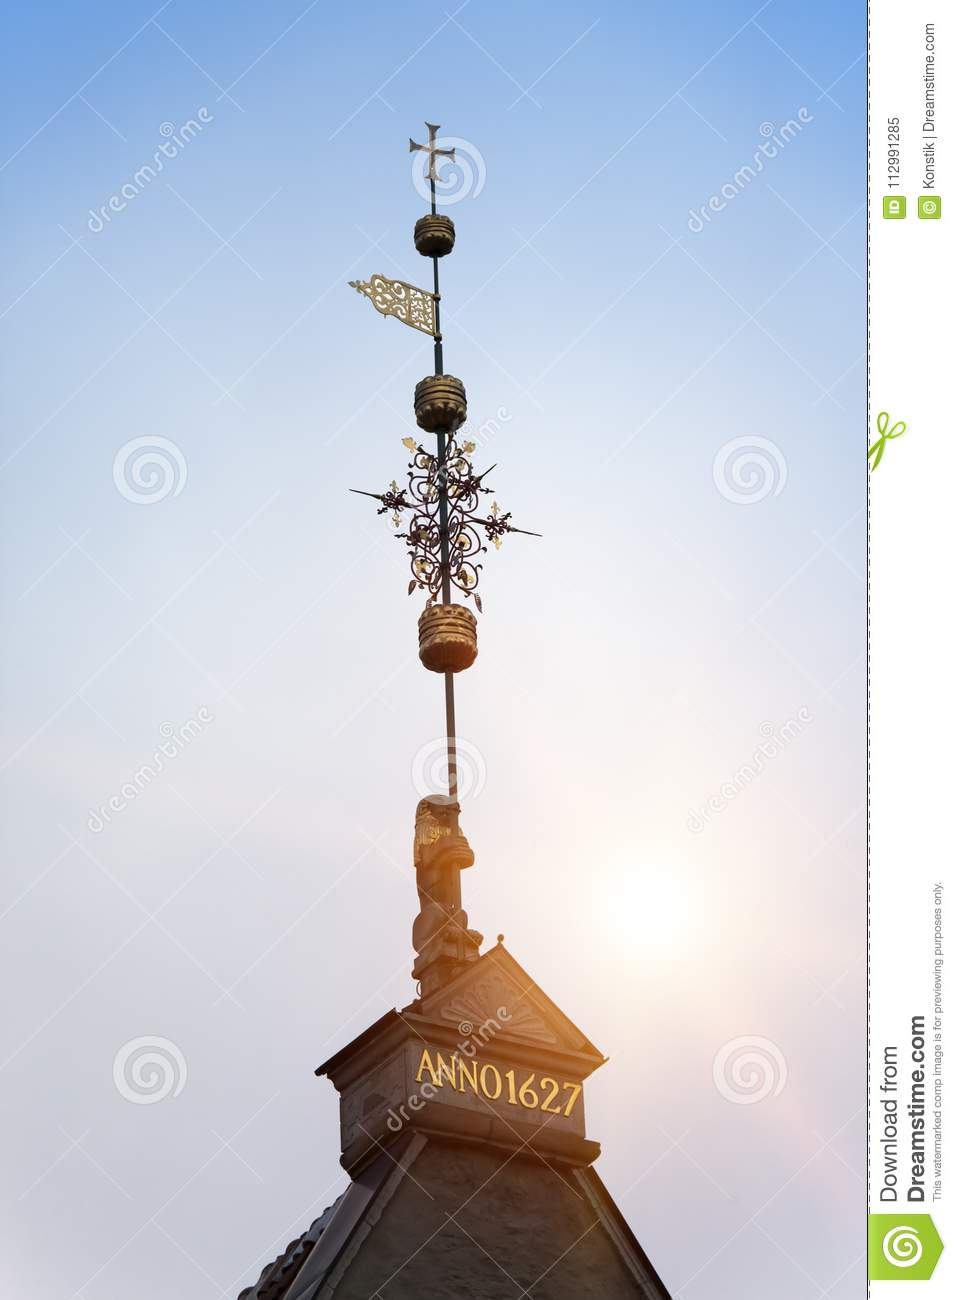 Old city, Tallinn, Estonia. A medieval weather vane